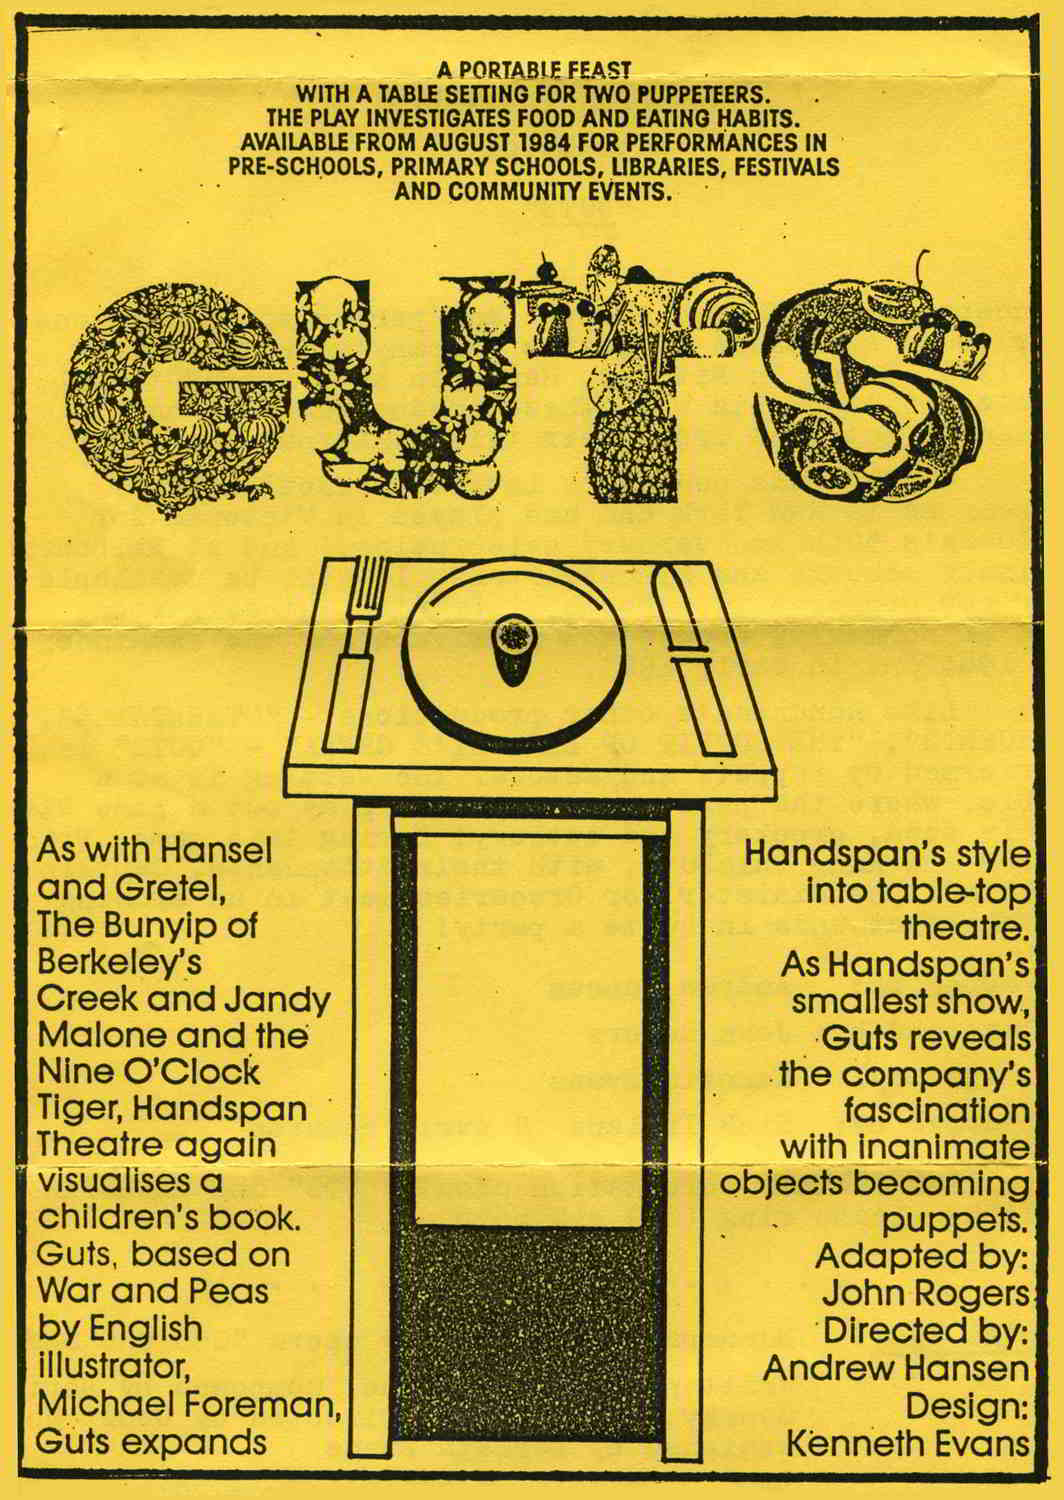 Handspan Theatre Guts flyer black text on yellow background